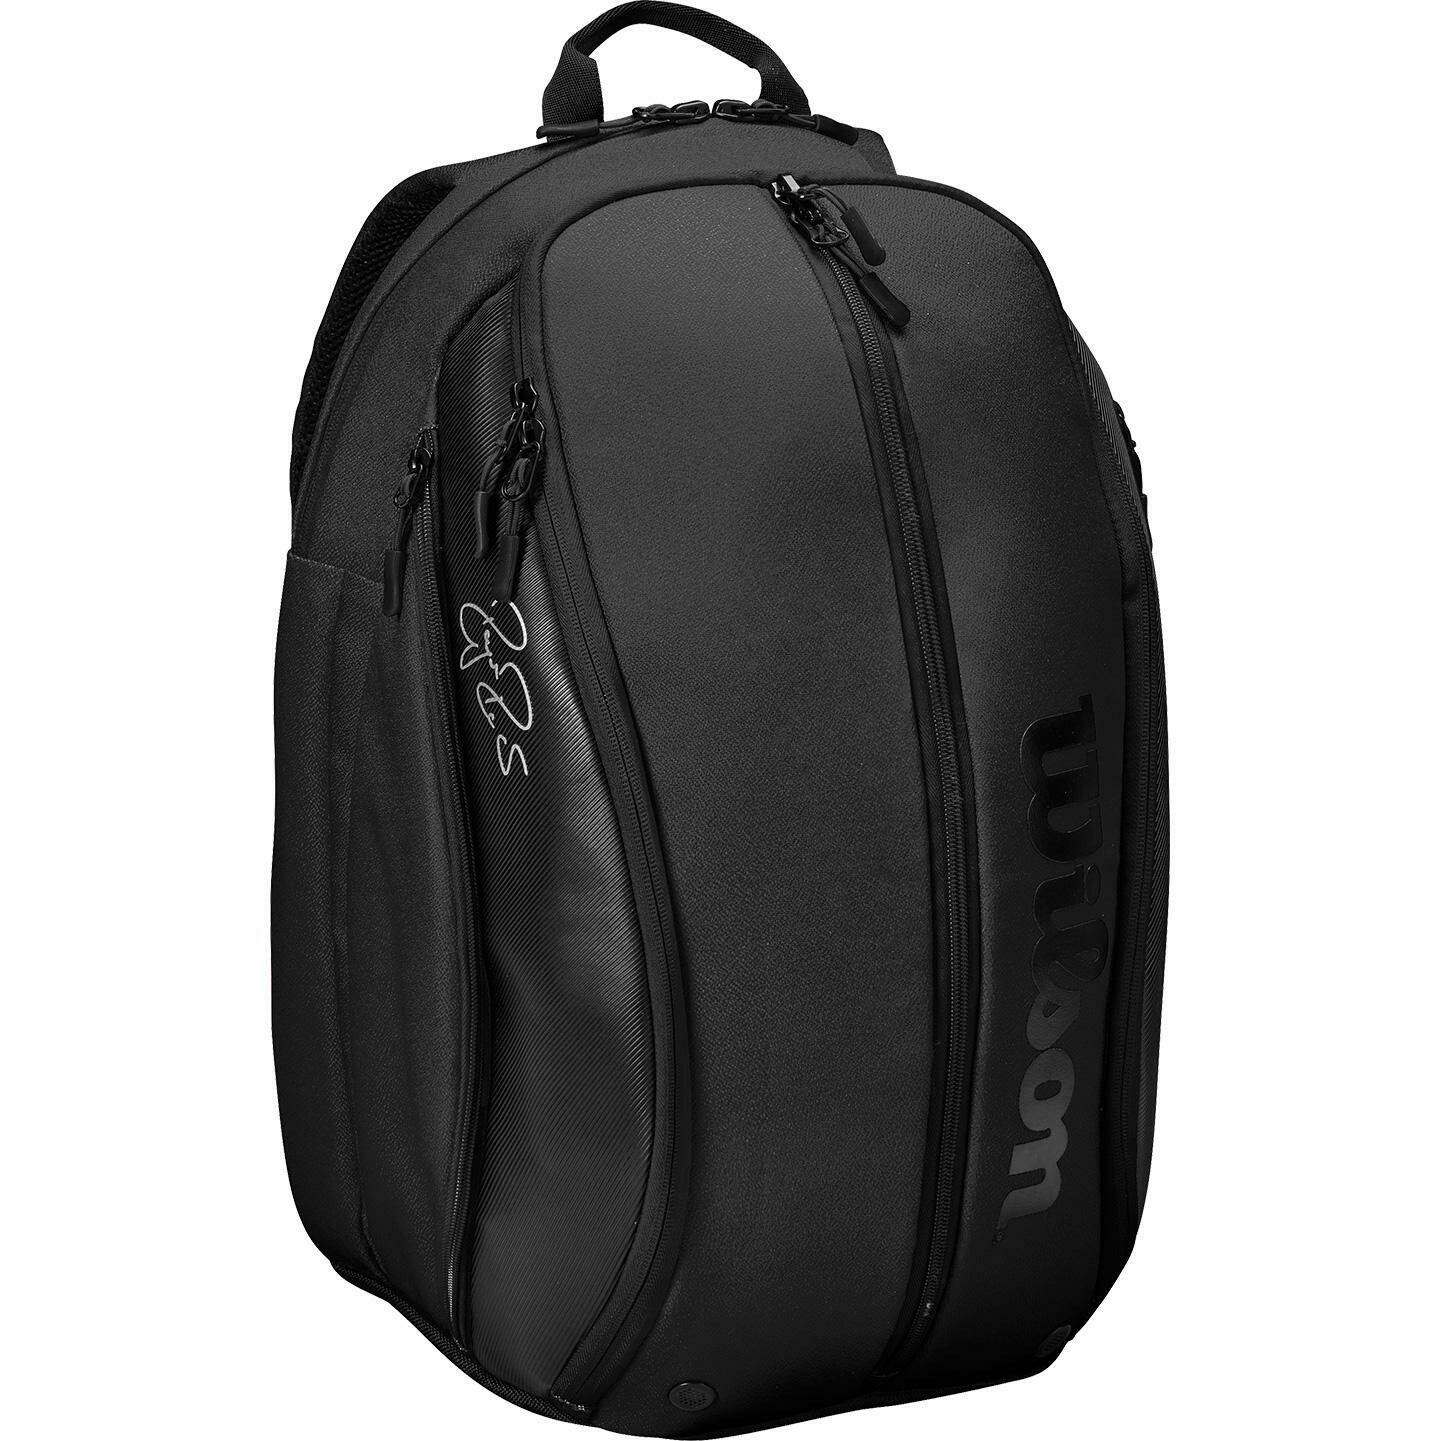 Wilson Federer DNA Backpack - Black